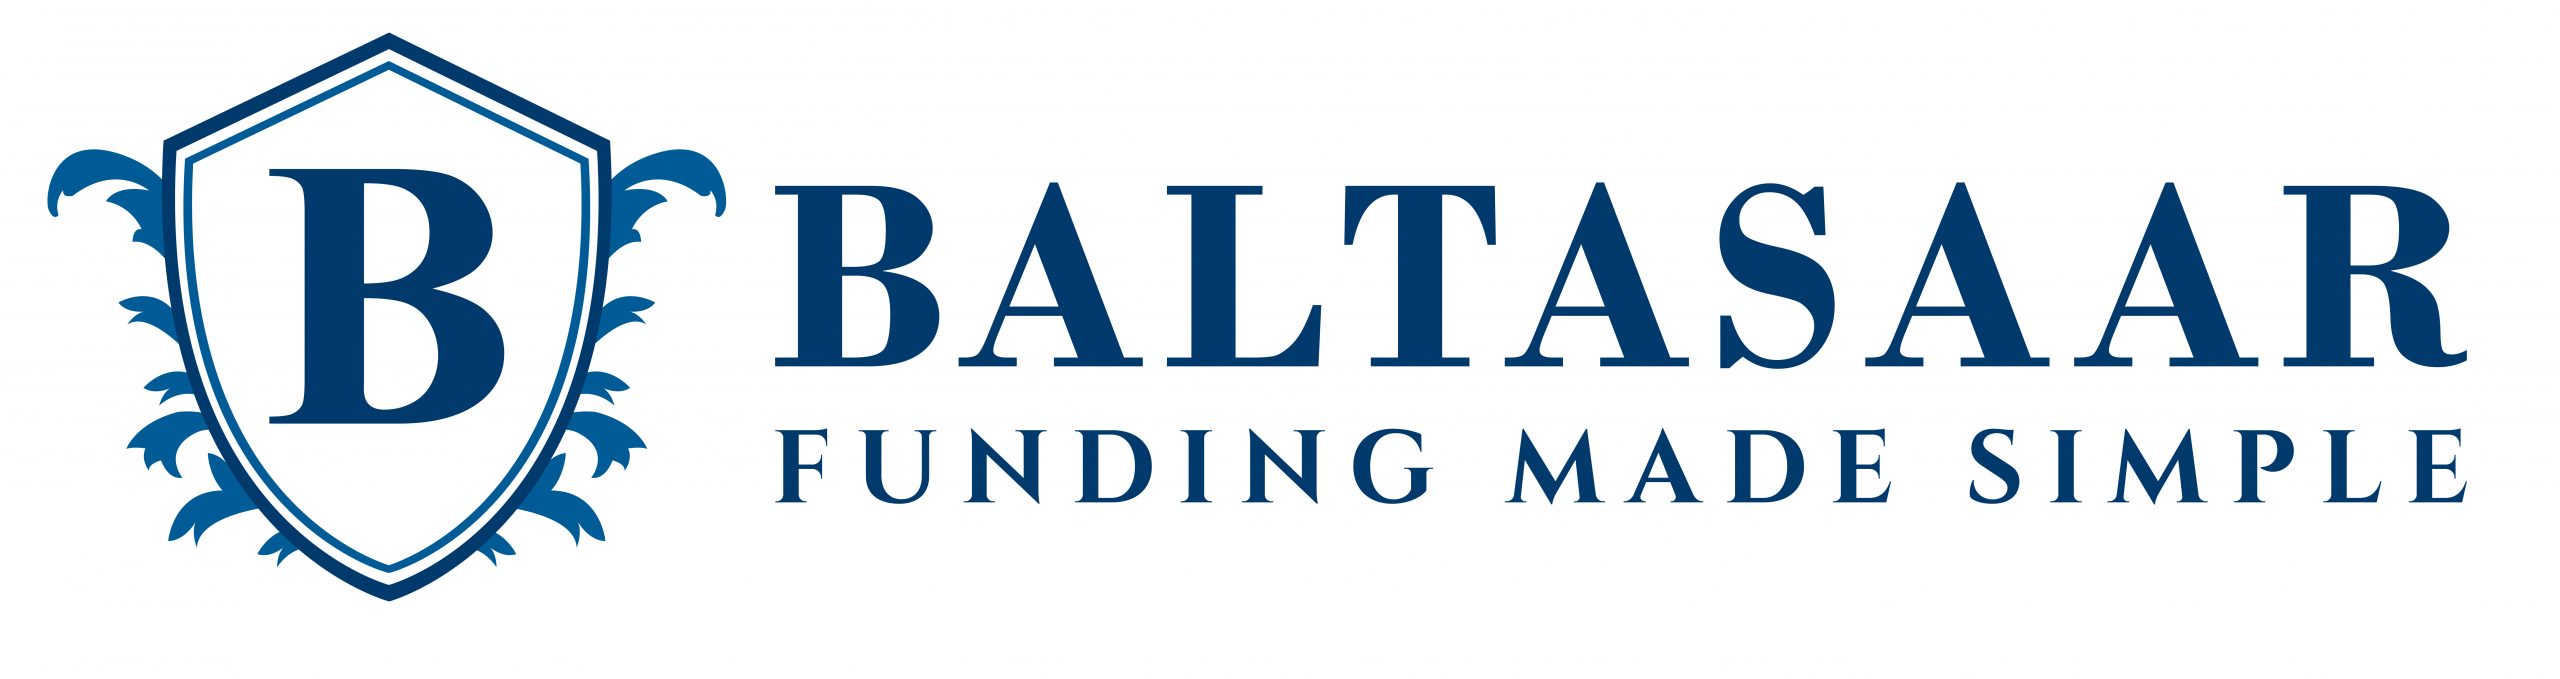 Baltasaar Finance